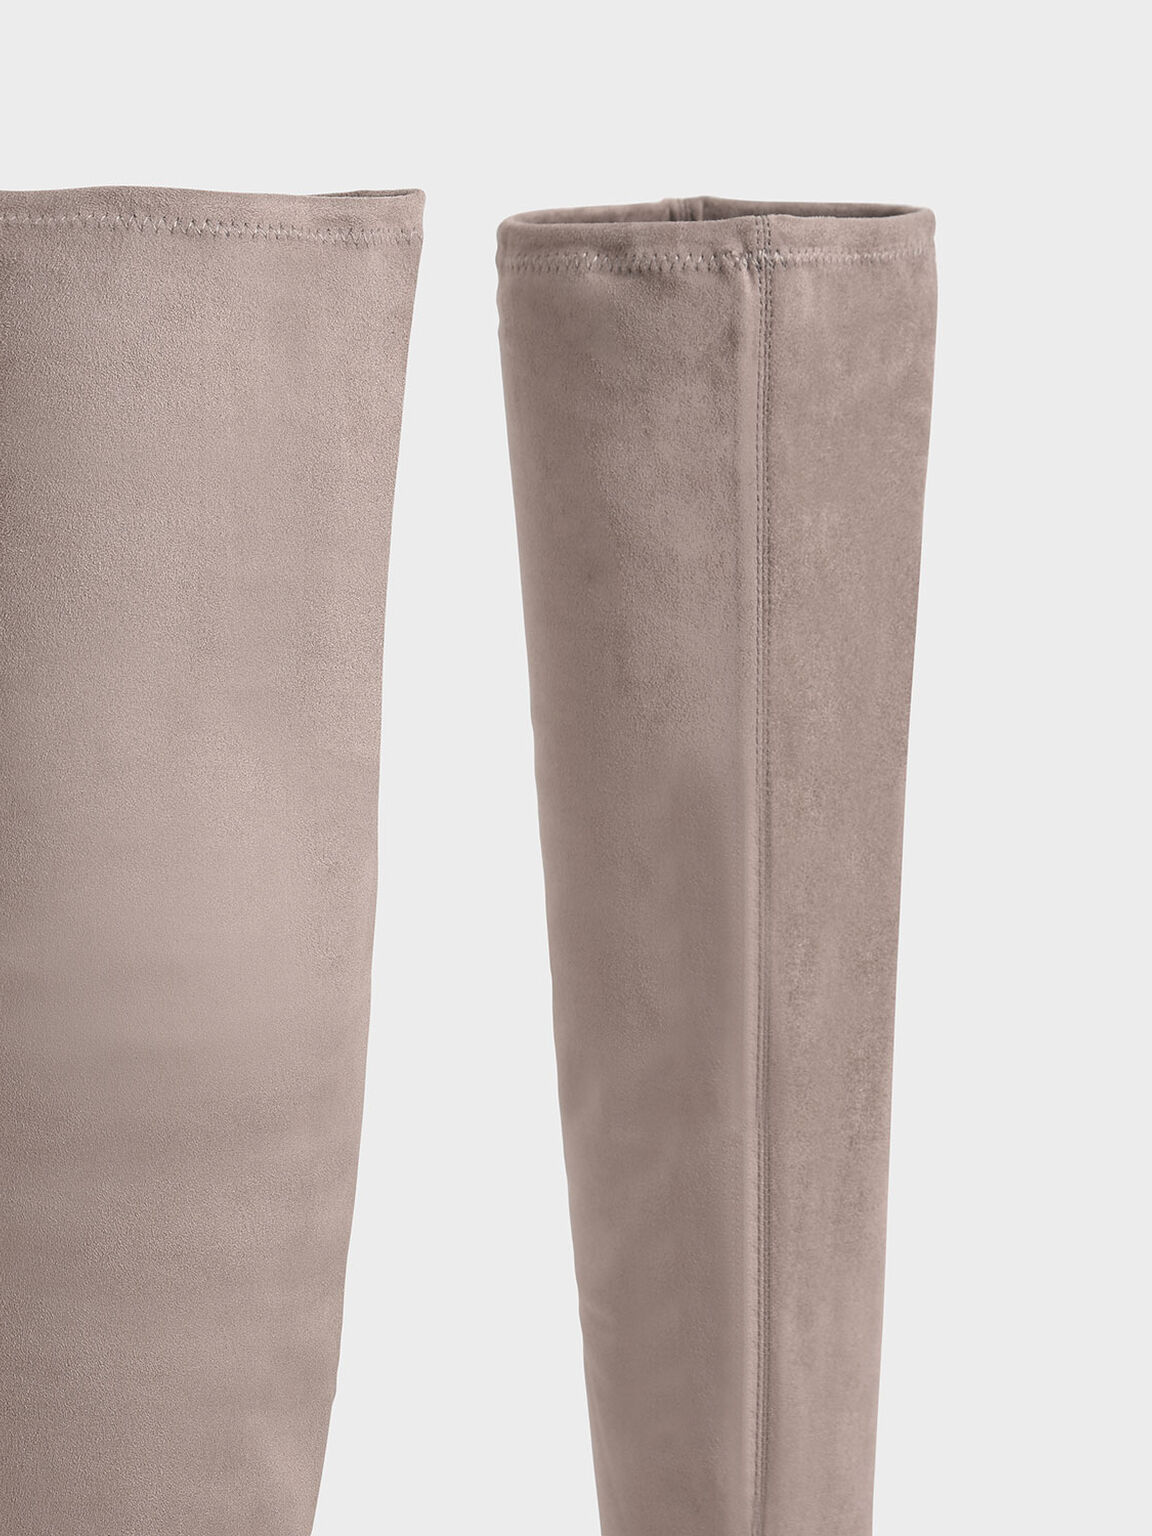 Textured Thigh High Boots, Taupe, hi-res